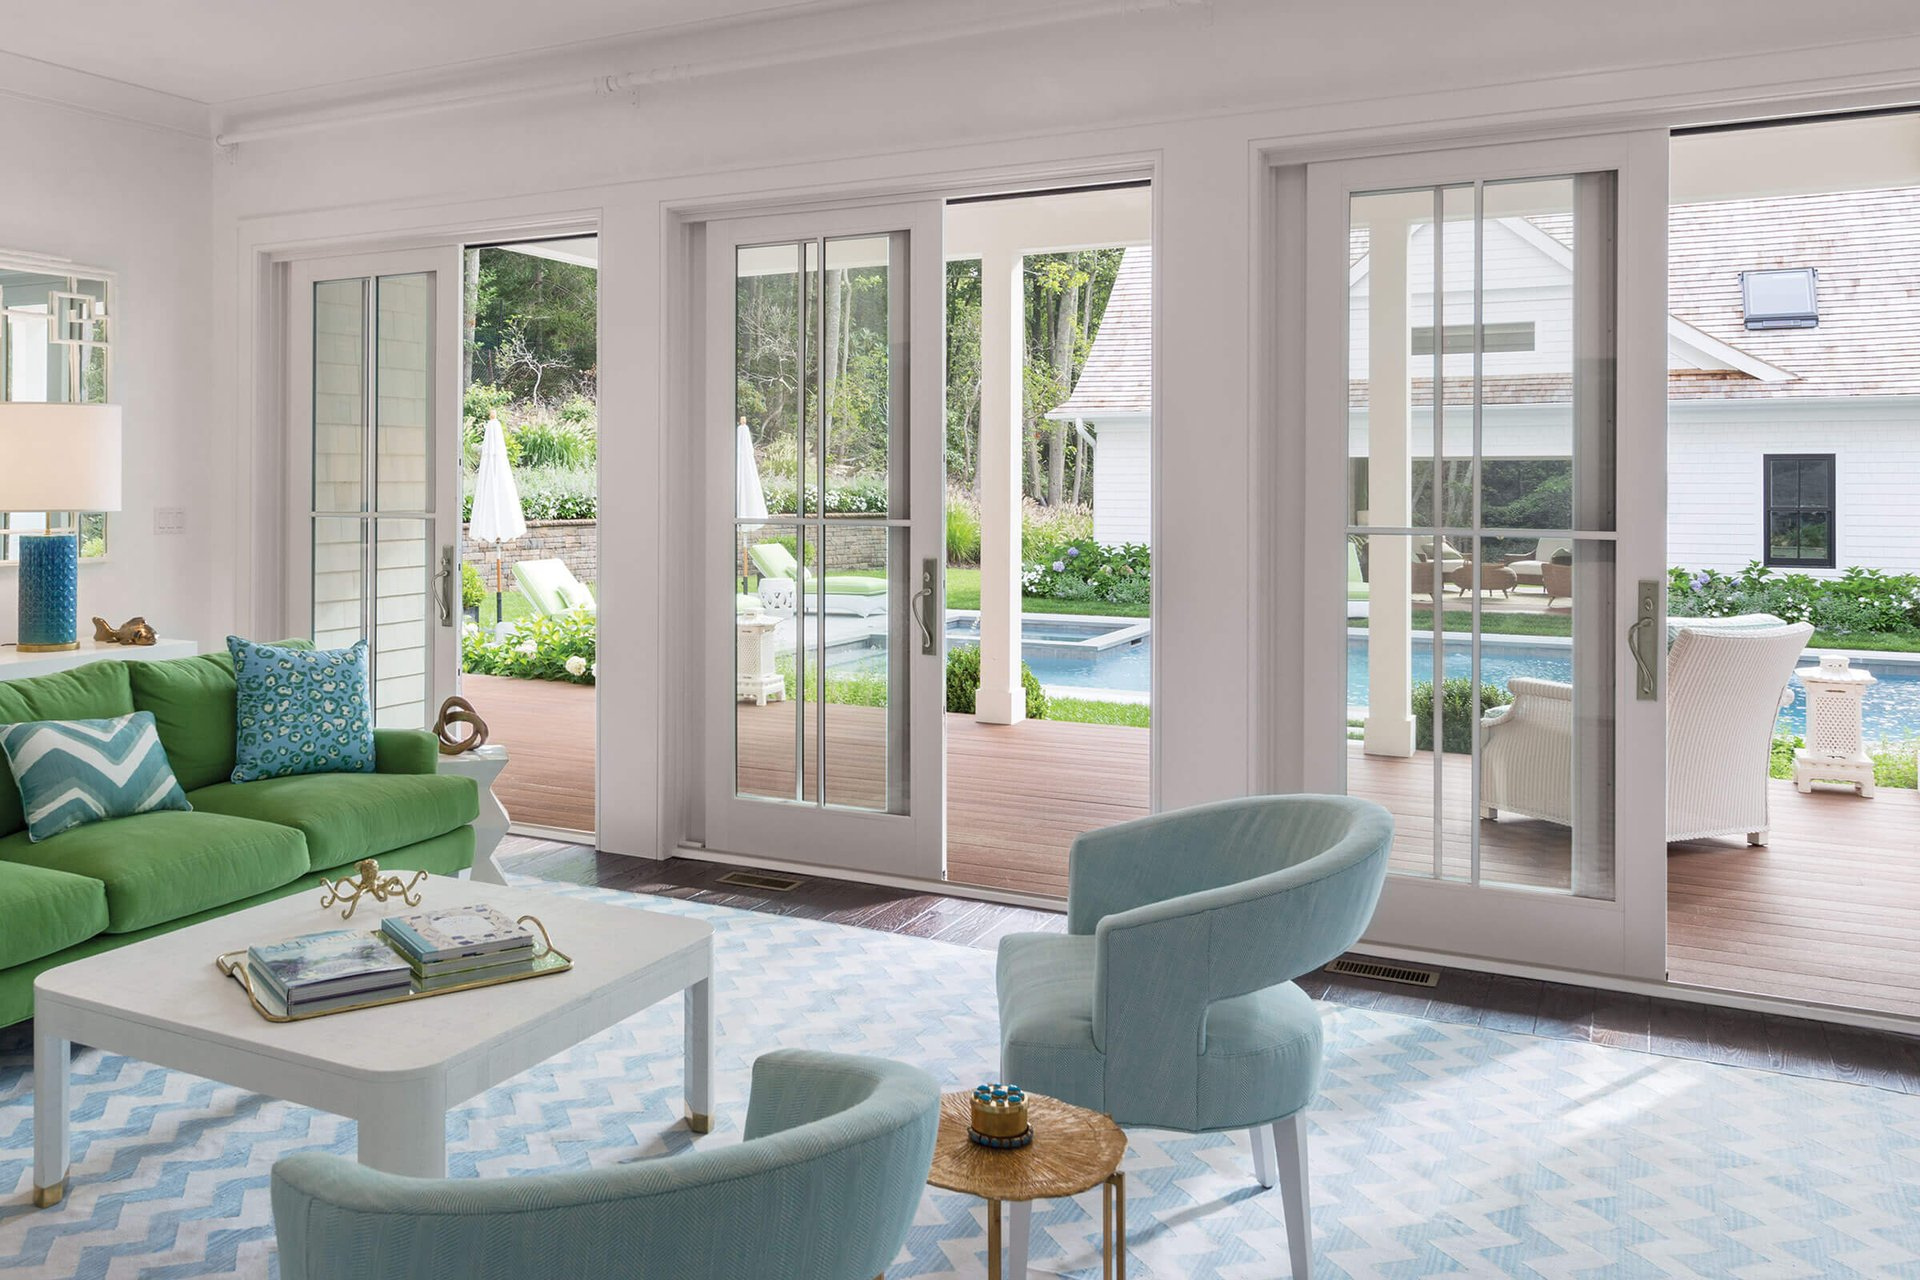 Green And Blue Living Room With Open Signature Ultimate Sliding French Doors